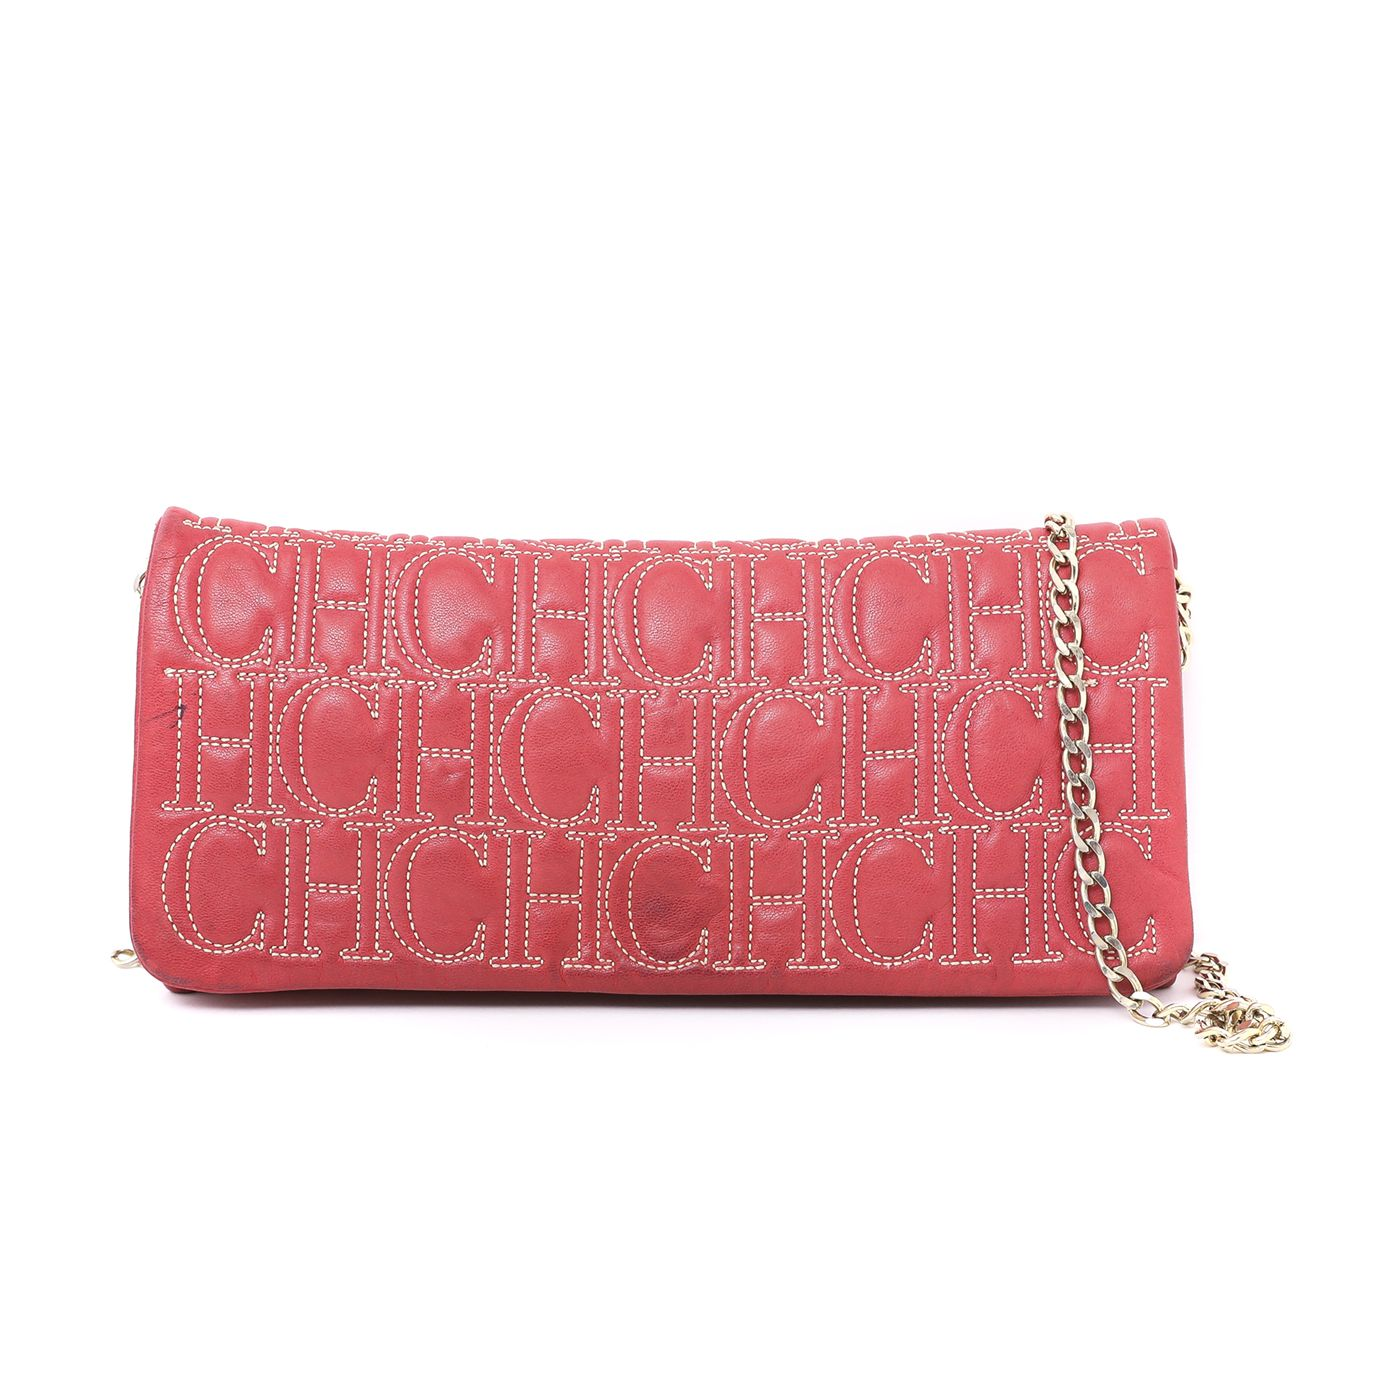 Carolina Herrera Red Monogram Flap Clutch